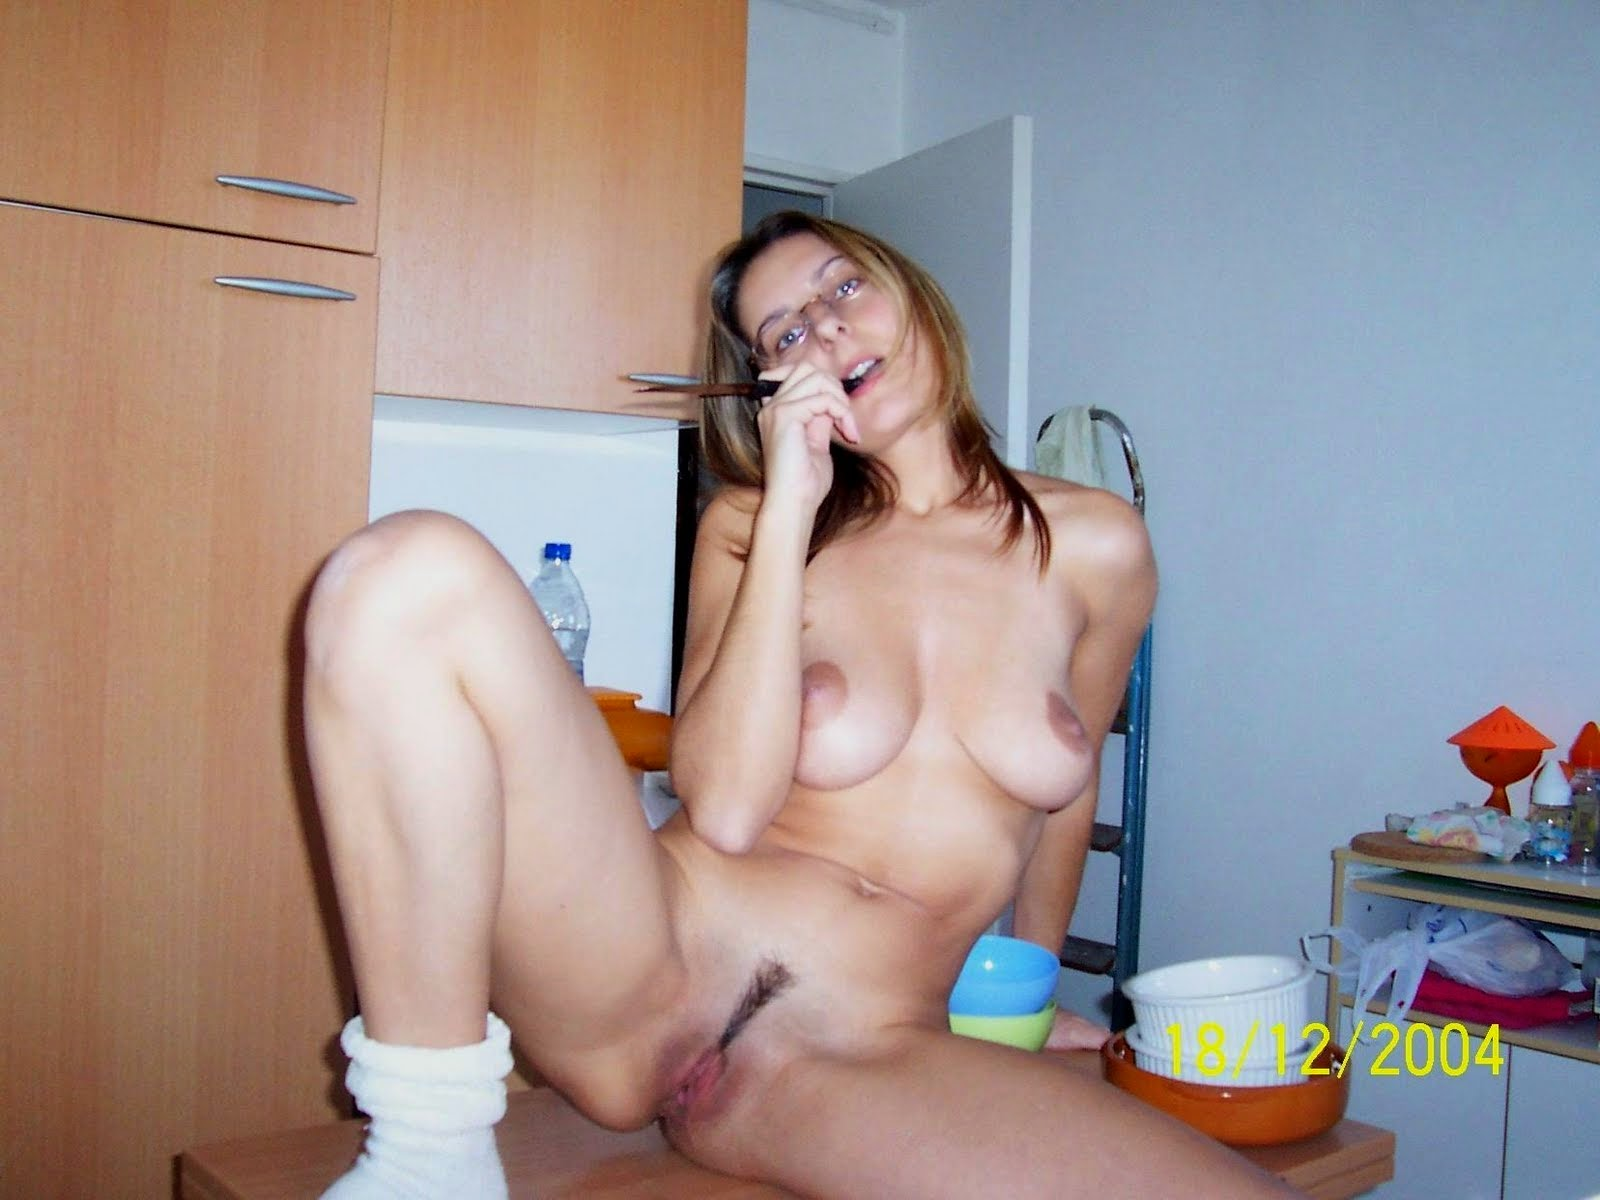 Homemade Nerds Nude - Cumception-2492